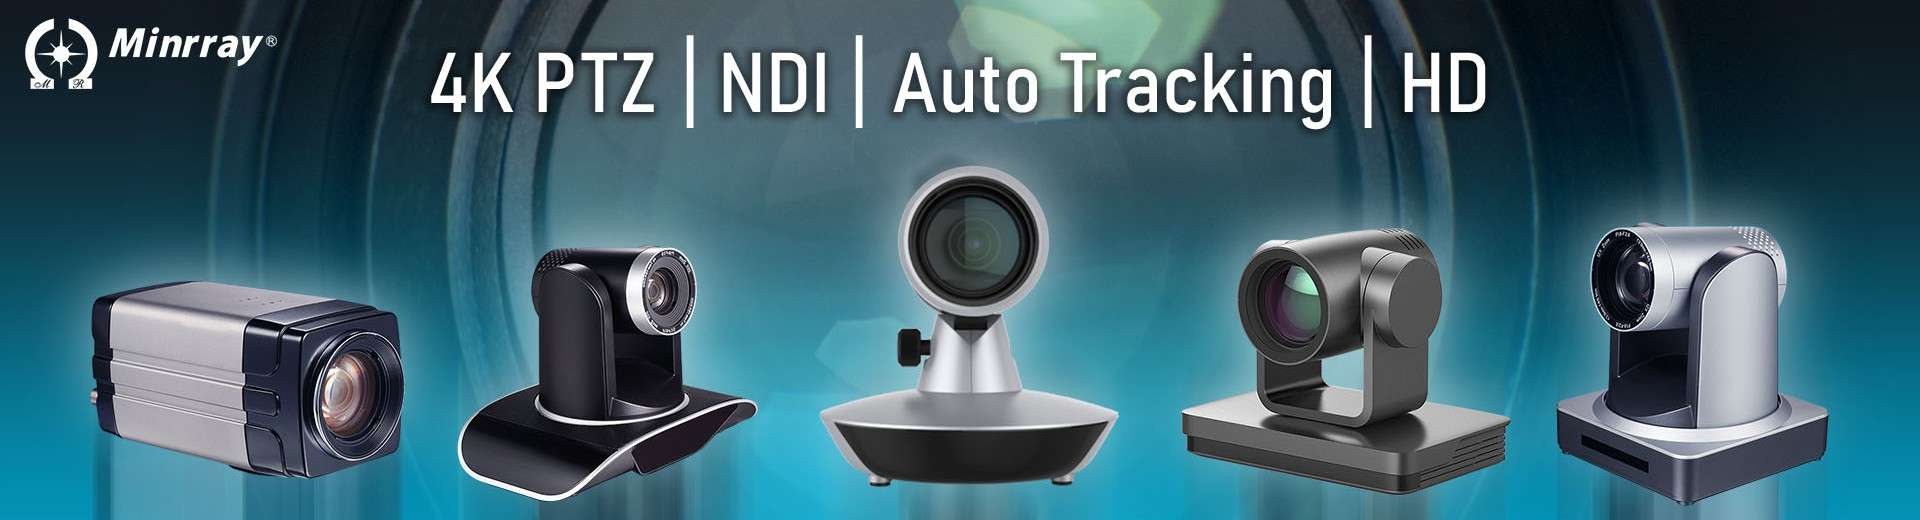 ndi ptz hd 4k video conference Camera